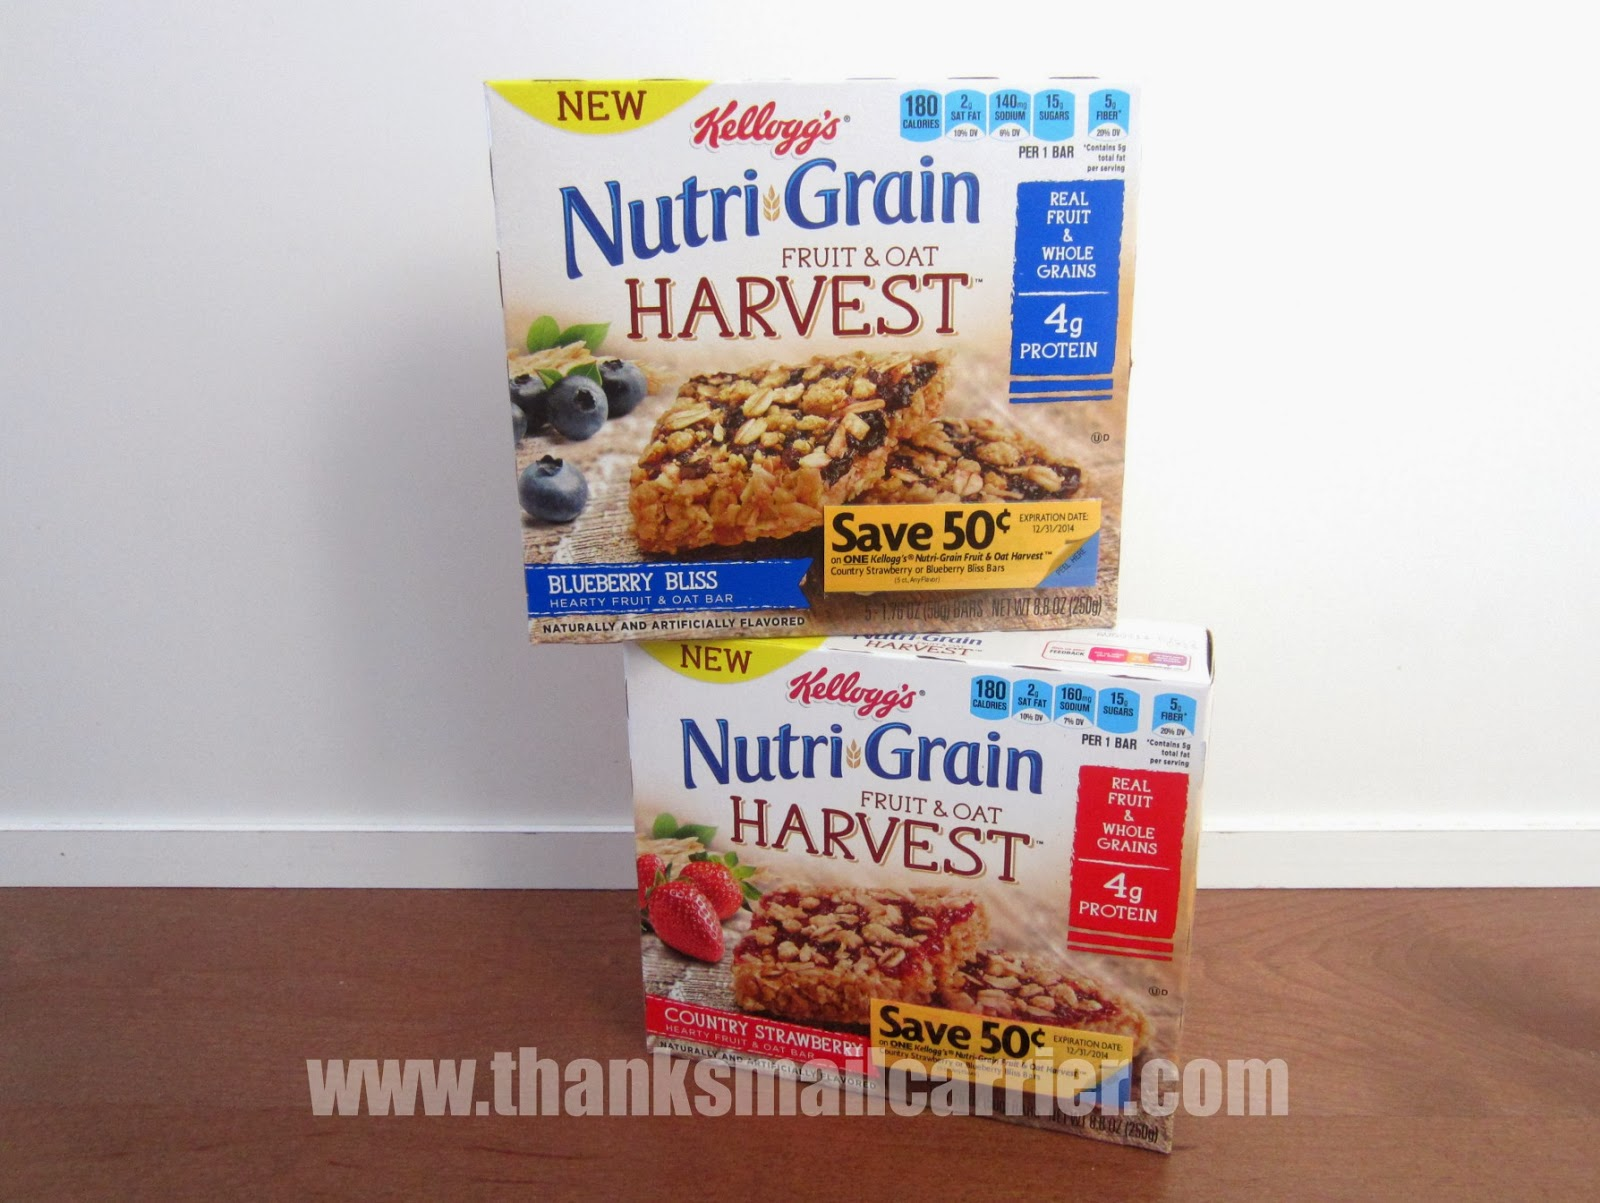 Kellogg's Nutri-Grain Fruit & Oat cereal bars